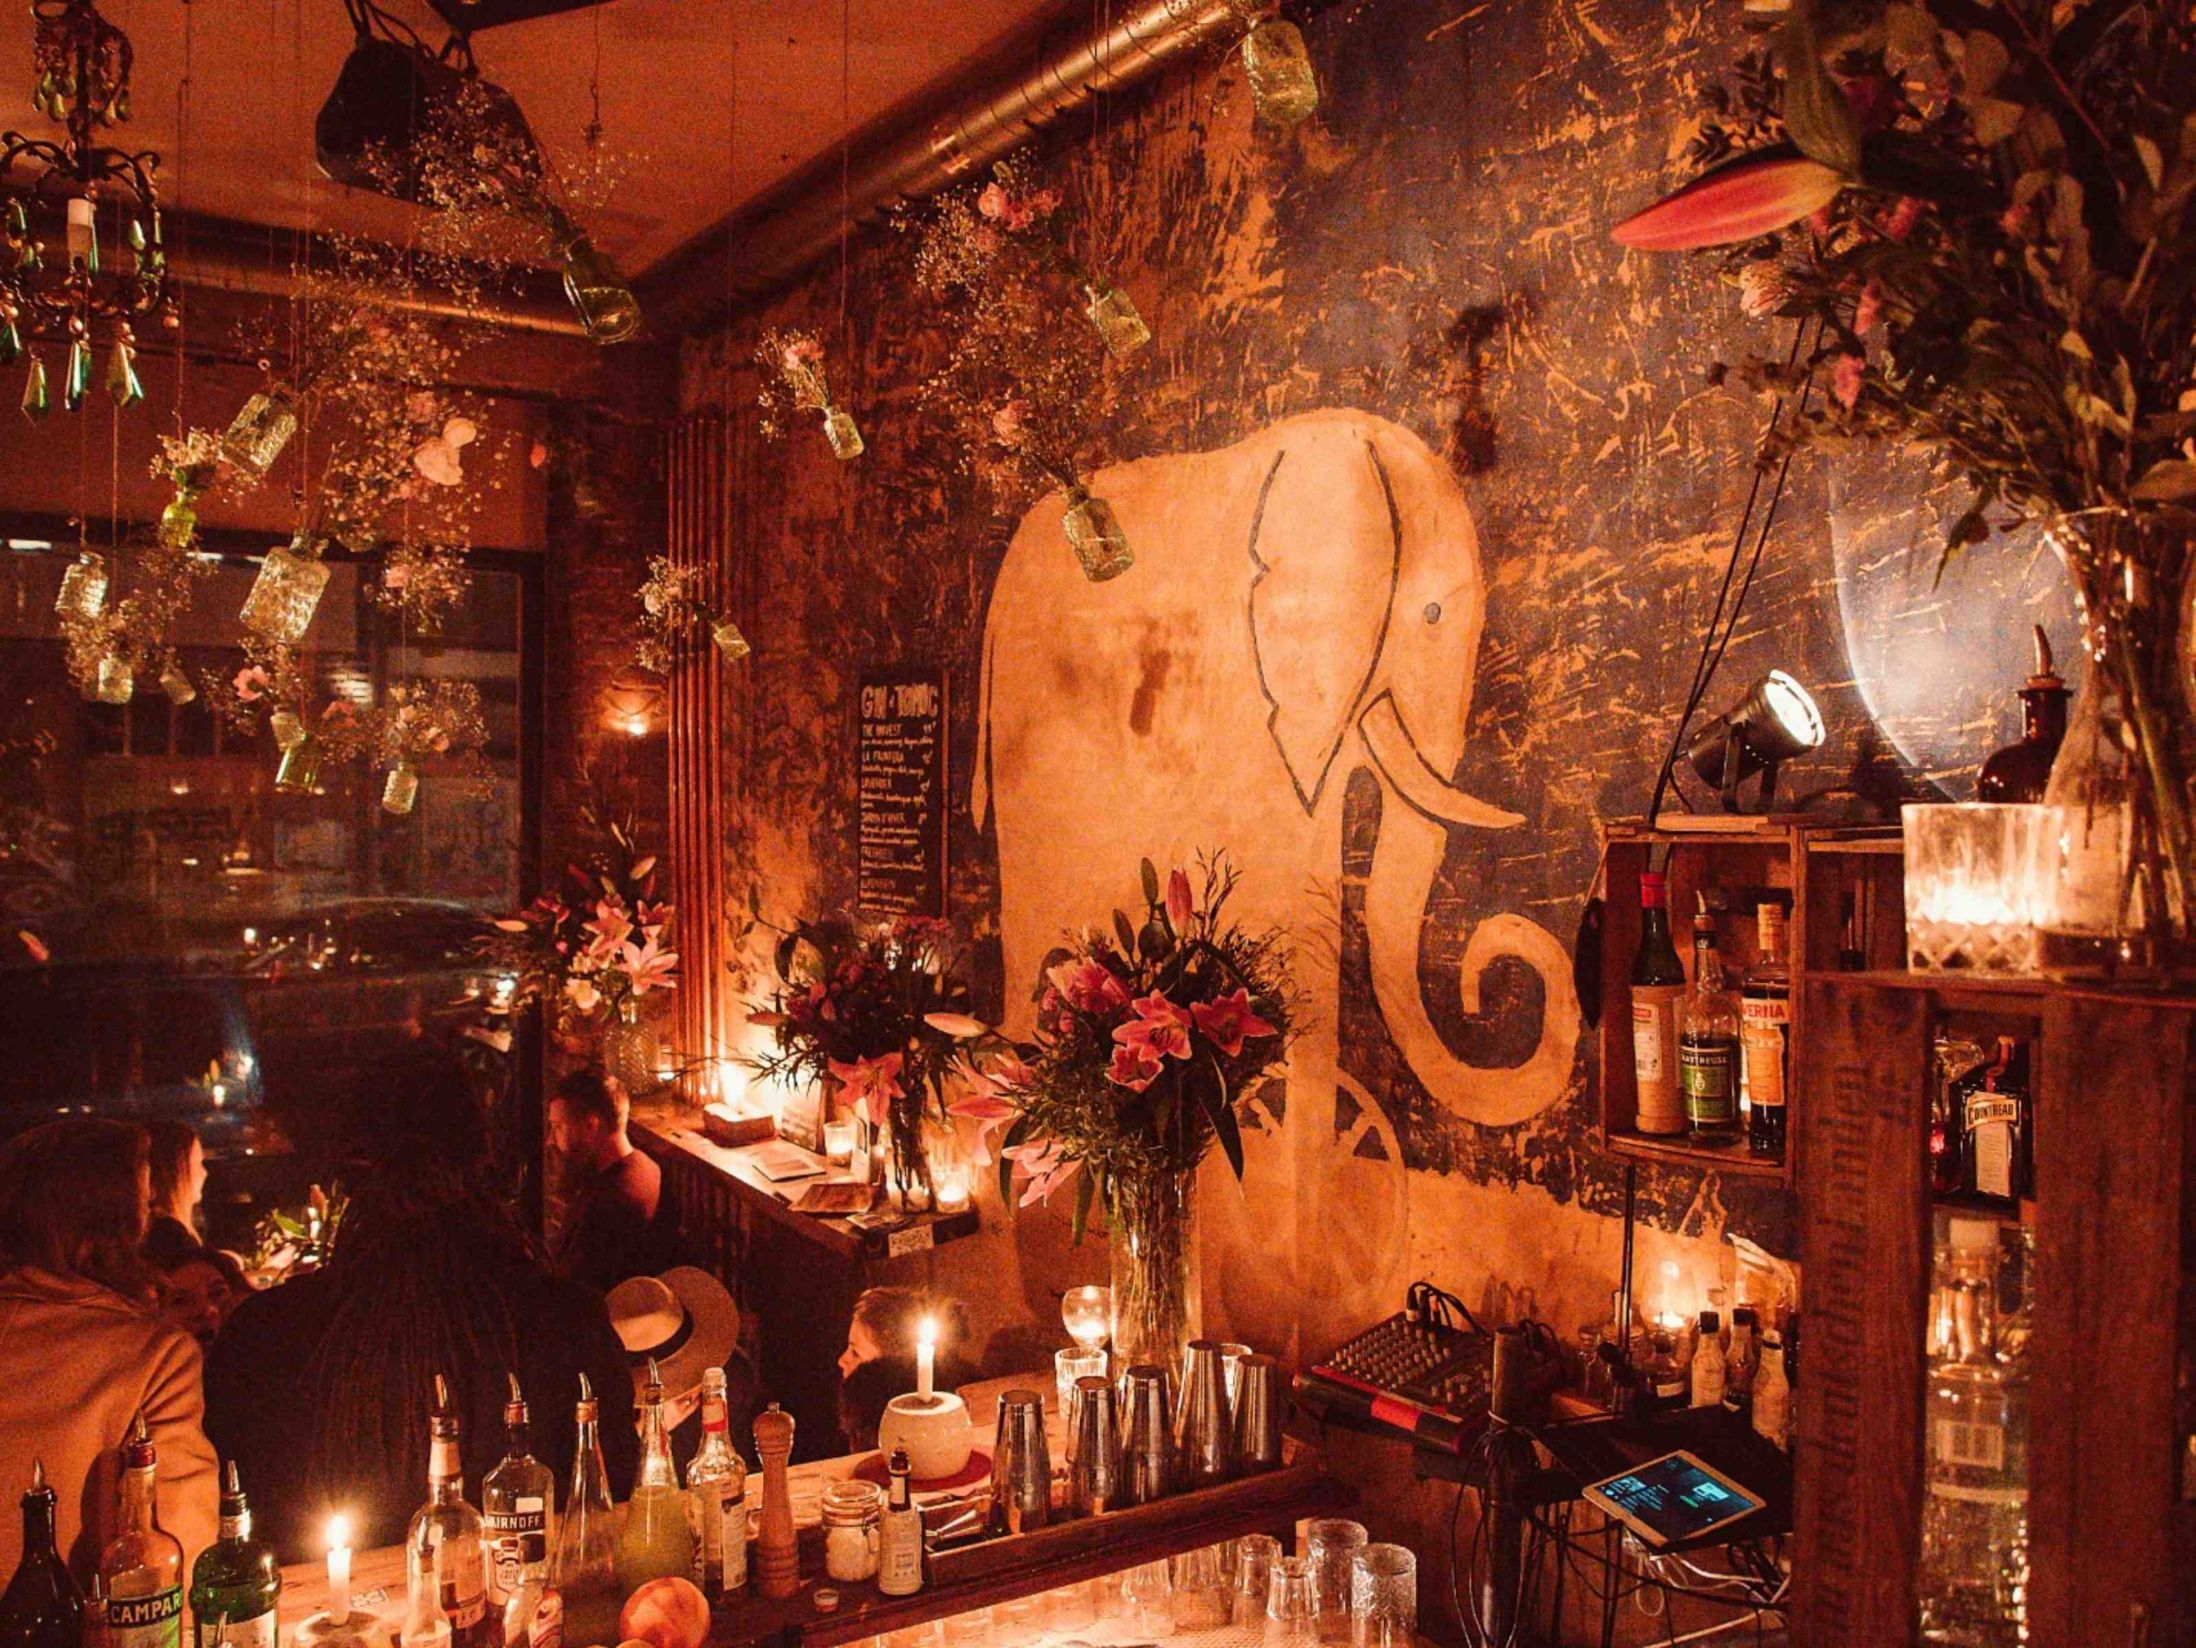 Best Bars in Berlin - DasHotel